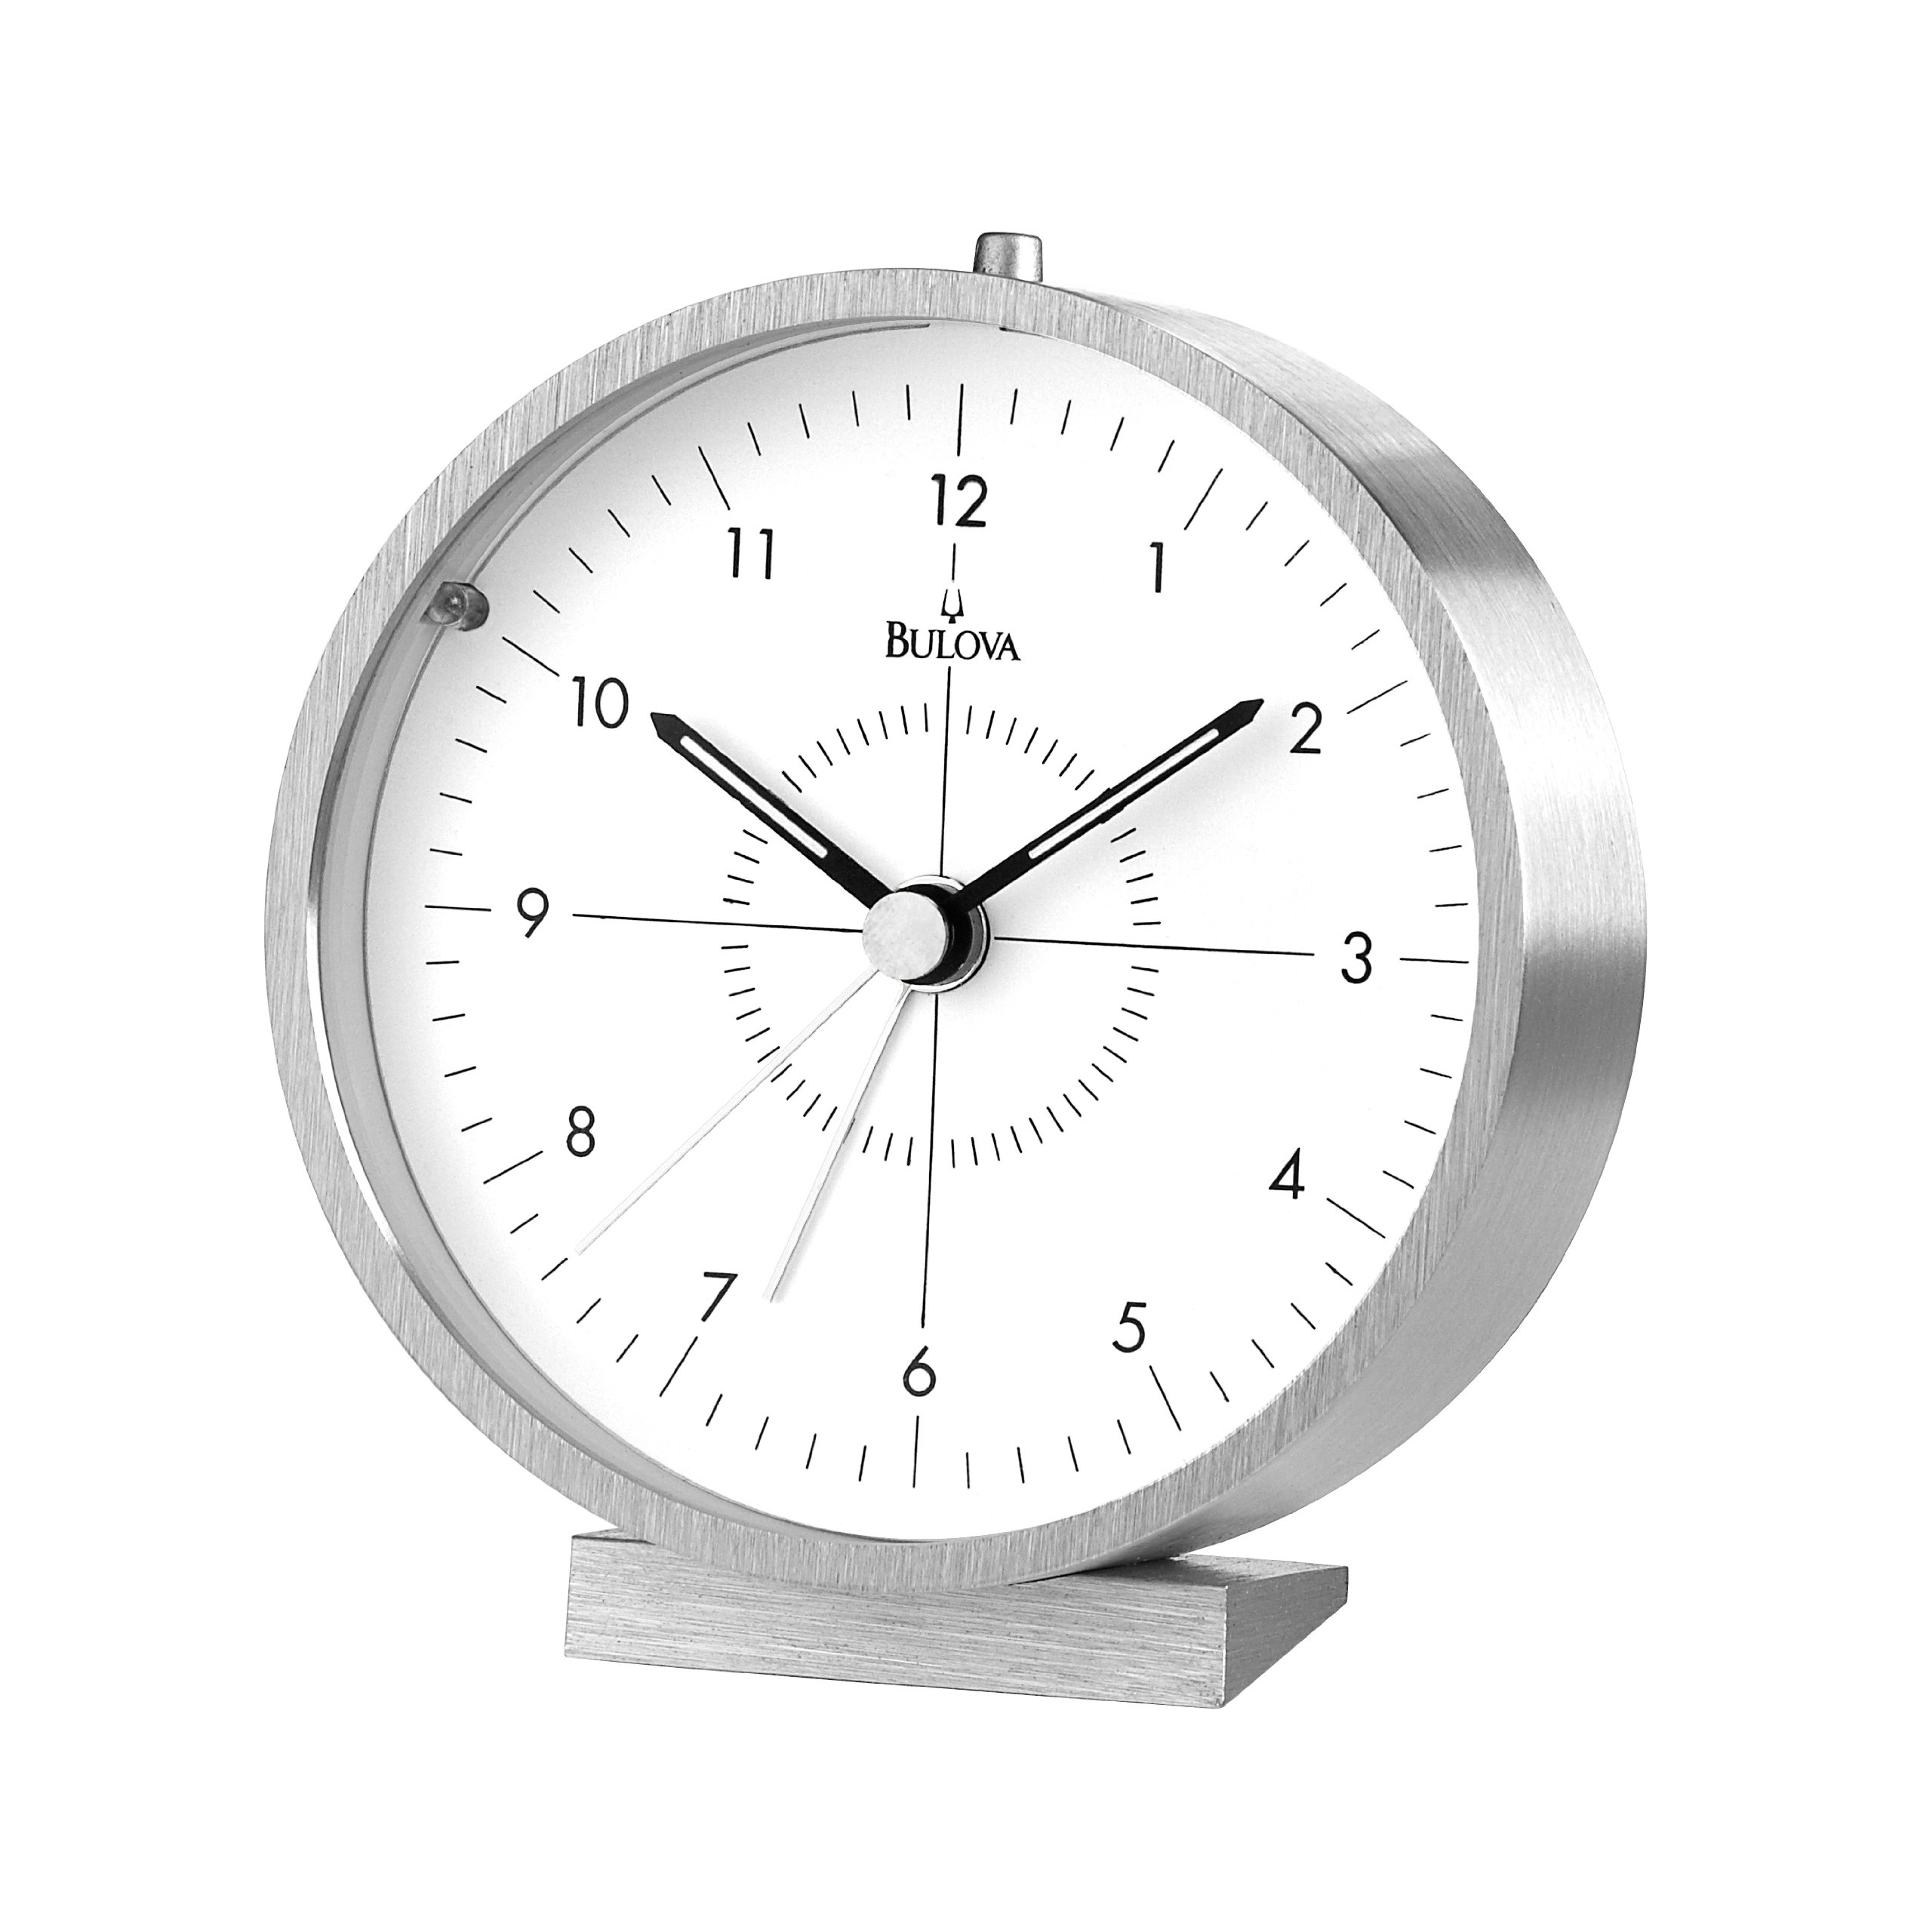 Bulova B6844 Flair Alarm Clock, Silver - Aluminum Case And Base Brushed Finish Luminous Hands - clocks, bedroom-decor, bedroom - 81y6hfCA8iL -